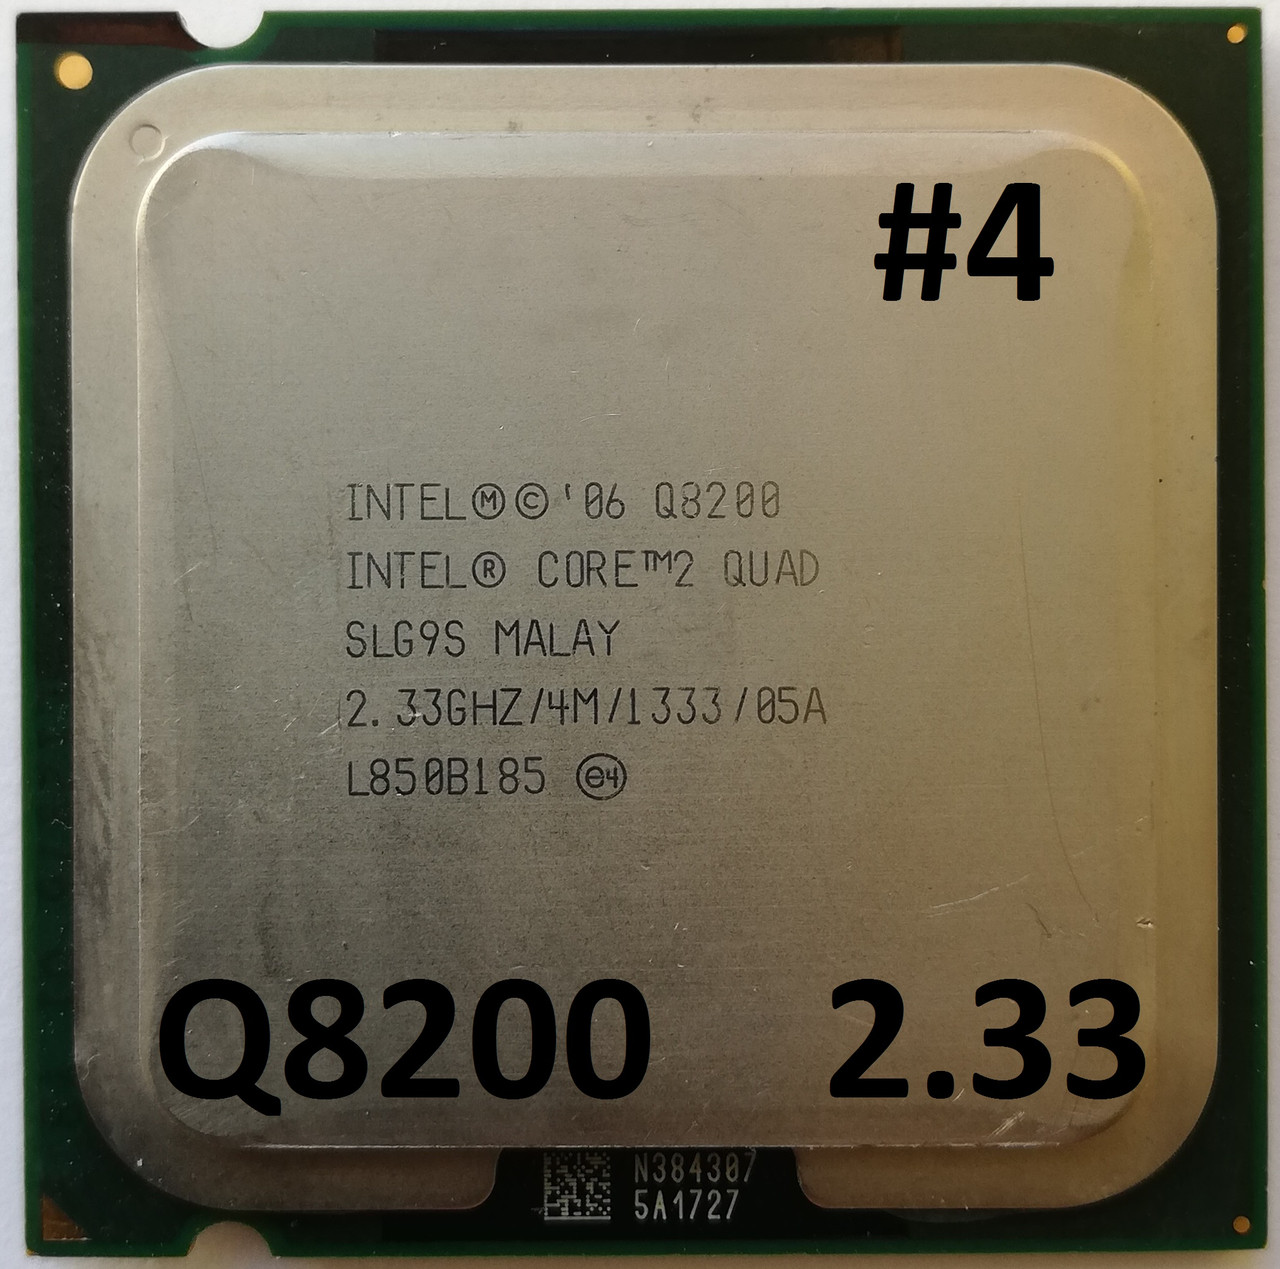 Процессор ЛОТ#4 Intel® Core™2 Quad Q8200 M1 SLB5M 2.33GHz 4M Cache 1333 MHz FSB Socket 775 Б/У